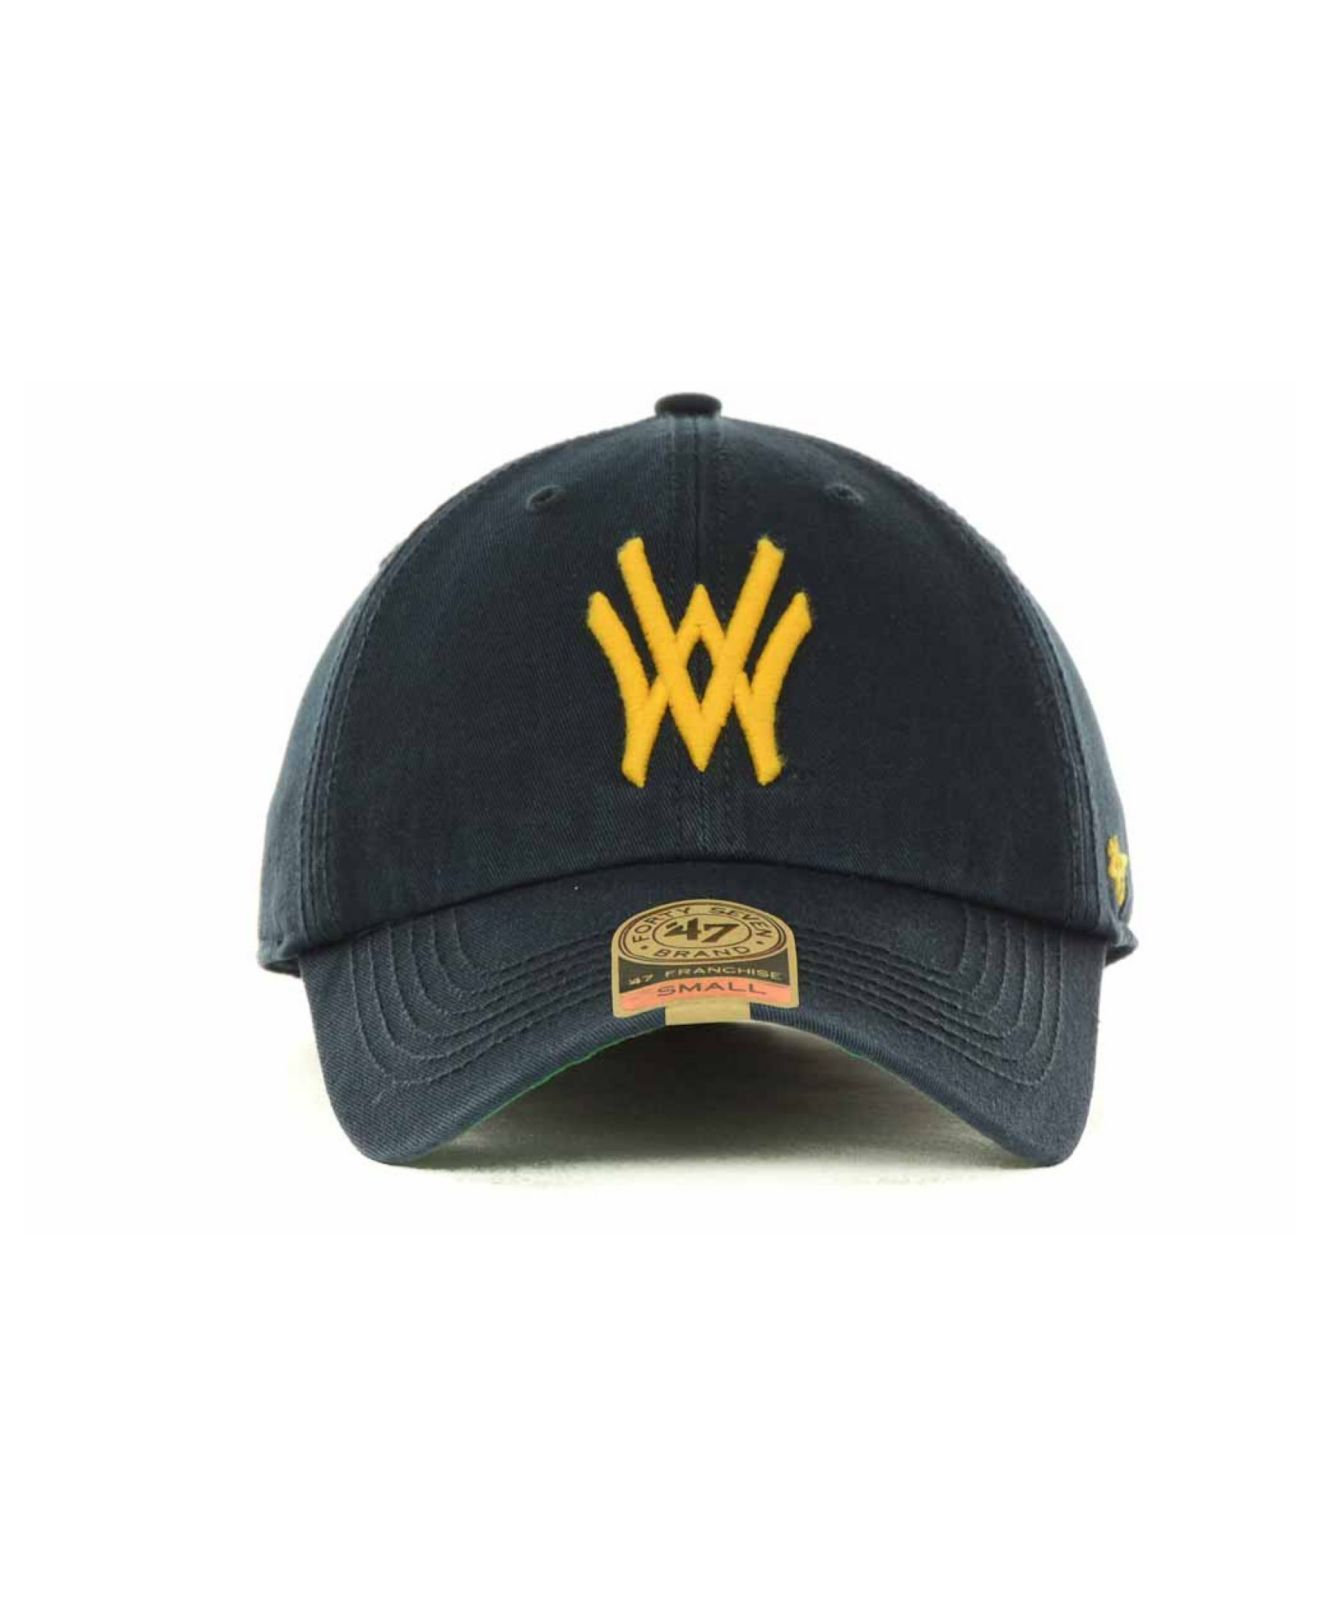 6f48ba4a2e3ce ... shopping lyst 47 brand west virginia mountaineers franchise cap in blue  for men 63d54 621c9